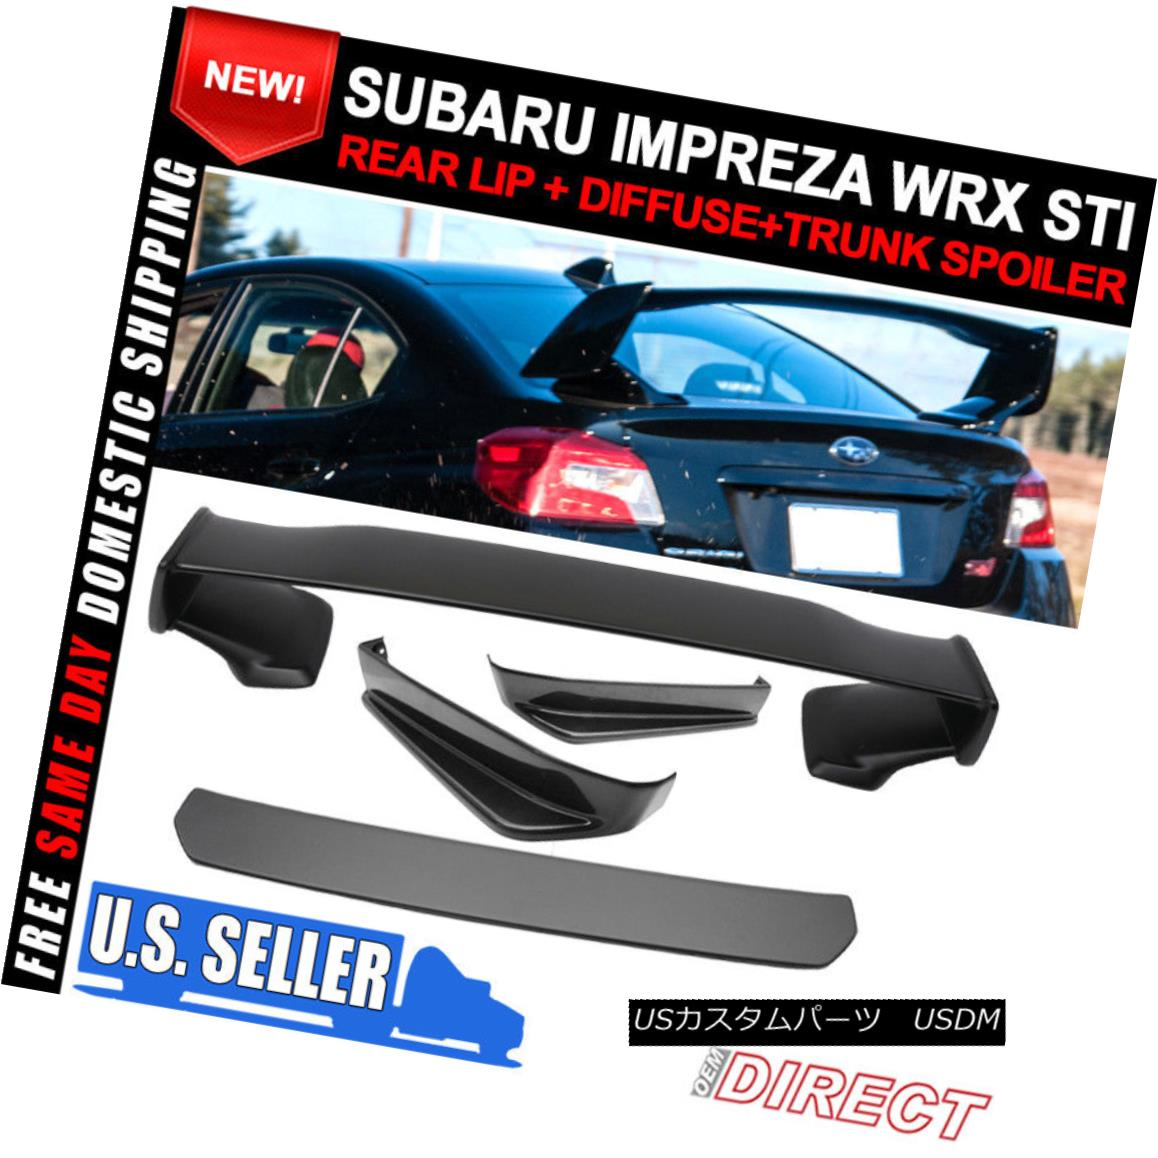 エアロパーツ Fits 15-18 Subaru WRX STI V Limited Rear Lip 2Pc+Diffuser+Spoiler ABS フィット15-18 Subaru WRX STI Vリヤリップ2Pc +ディフューザ+ ABS